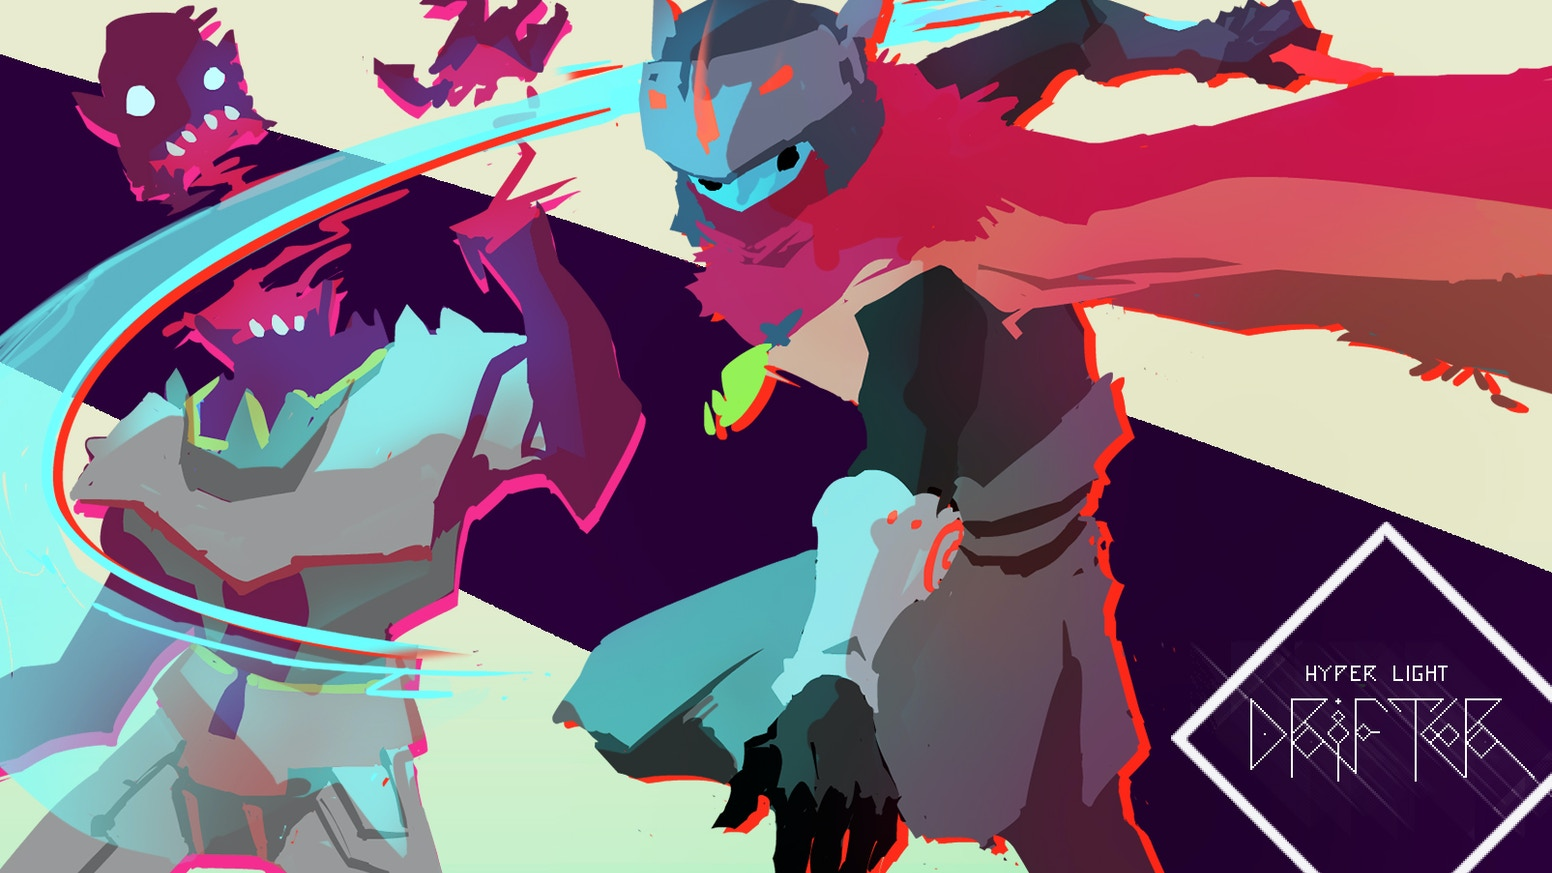 Hyper Light Drifter By Heart Machine Kickstarter